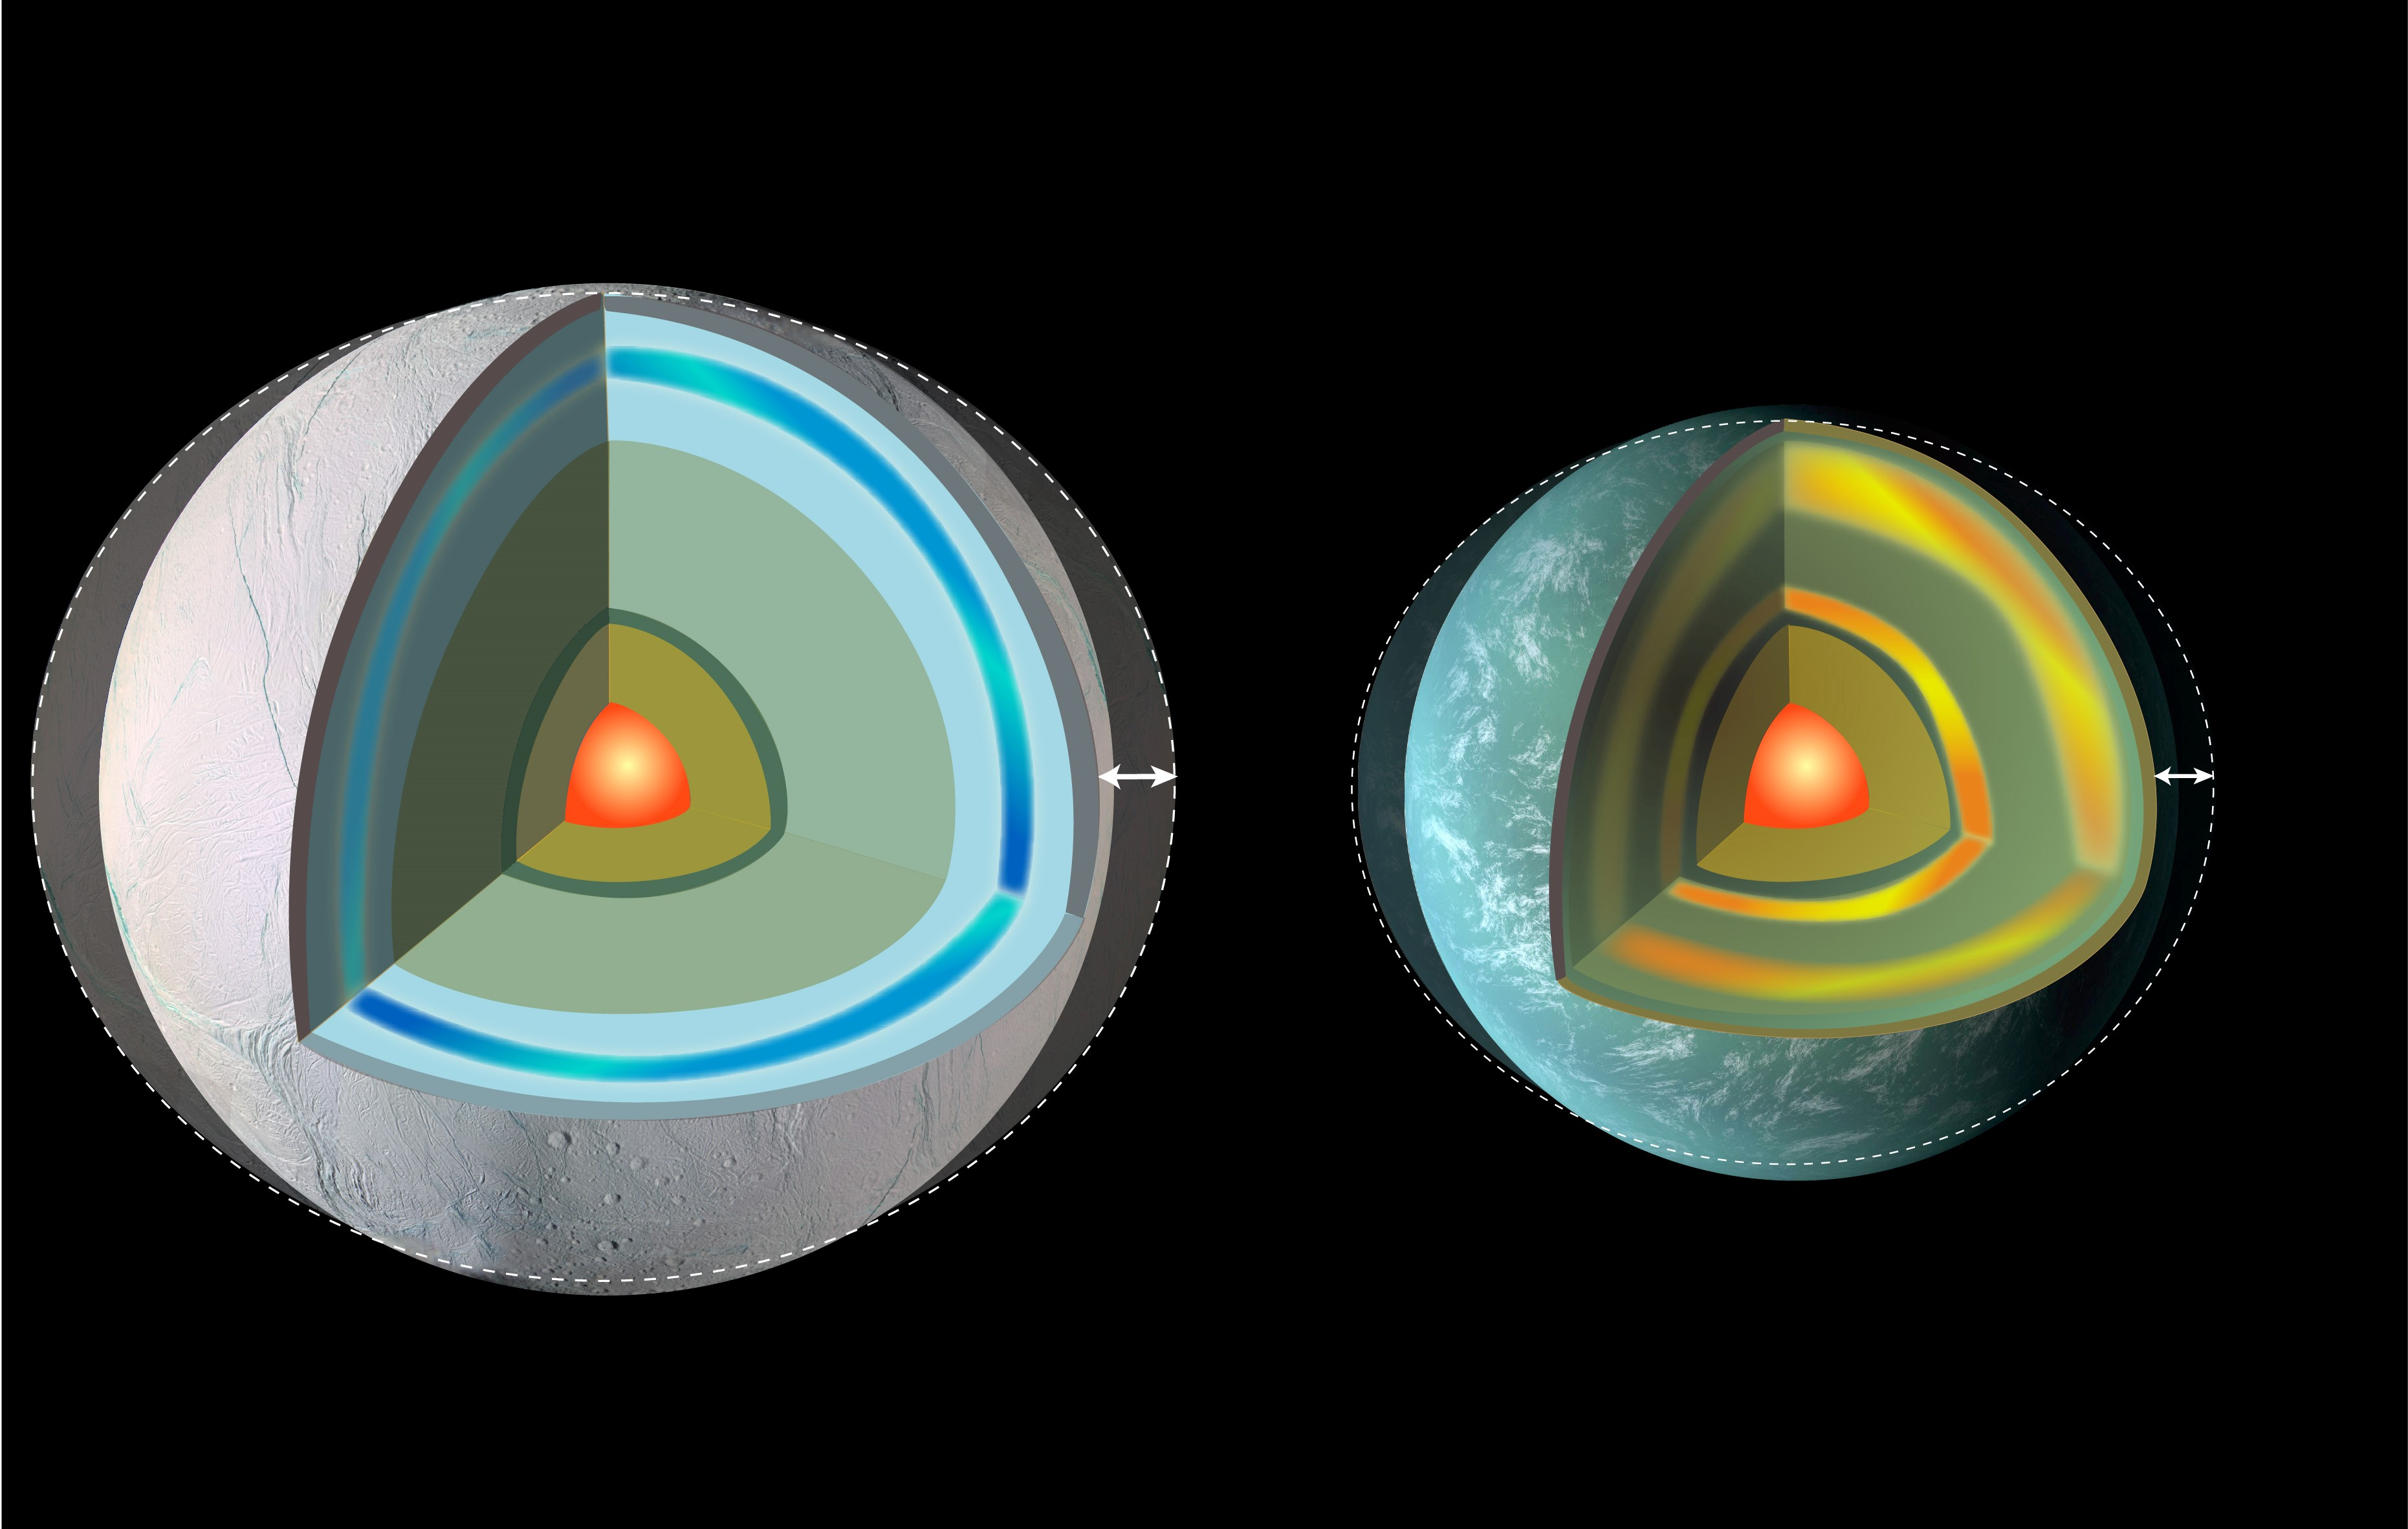 Flexible planets: NASA is studying how planets in eccentric orbits flex due to tidal forces. At left is a planet with a thick ice shell, and at right a terrestrial-type planet. Credit: NASA's Goddard Space Flight Center